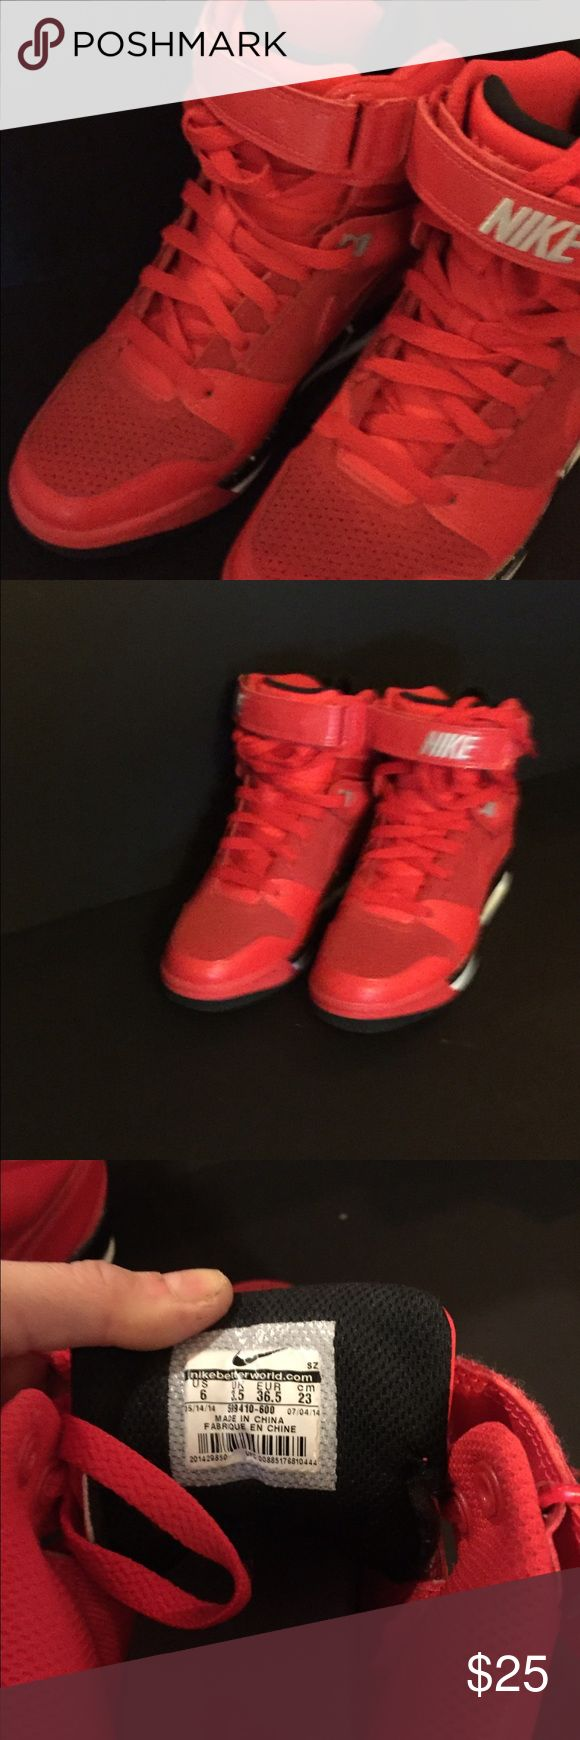 Nike Red Wedge High Top Sneakers Excellent condition worn once. Hightop fashionable sneakers with inside wedge. Size 6 Nike Shoes Athletic Shoes